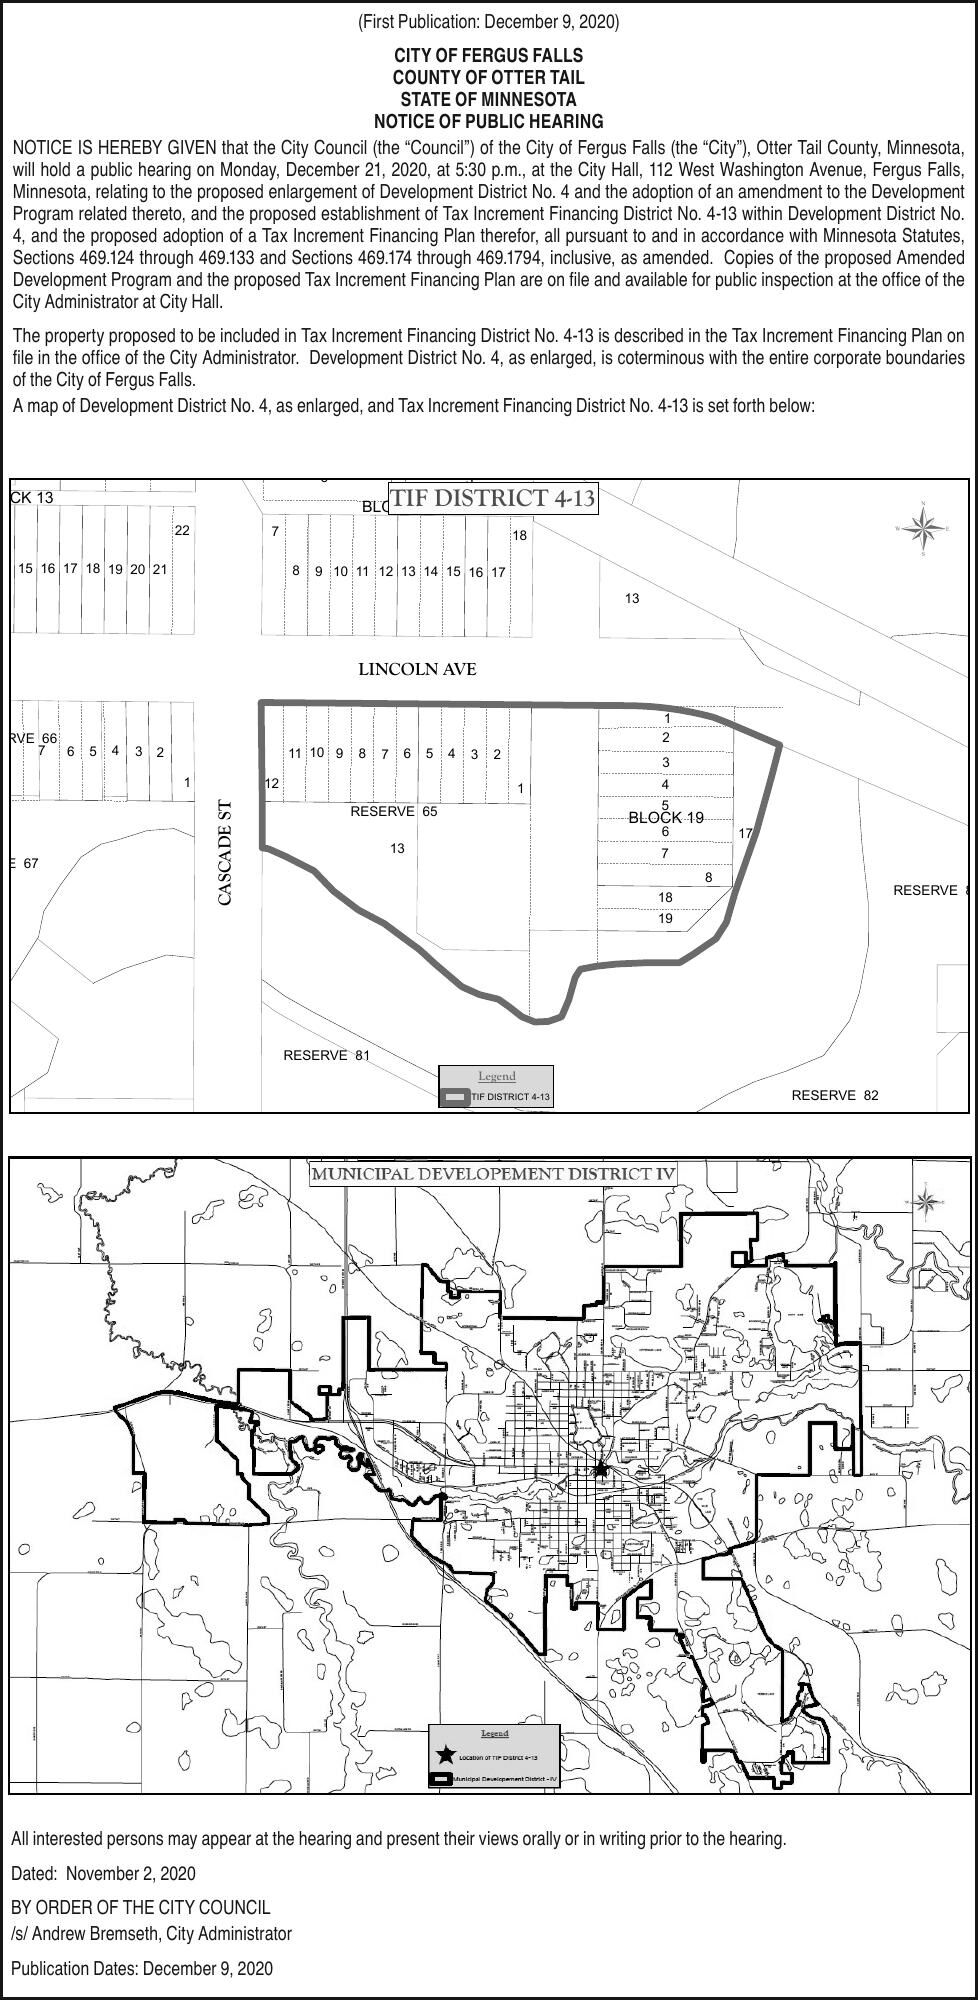 City of FF - Public Hearing - Enlarge Development of District 4